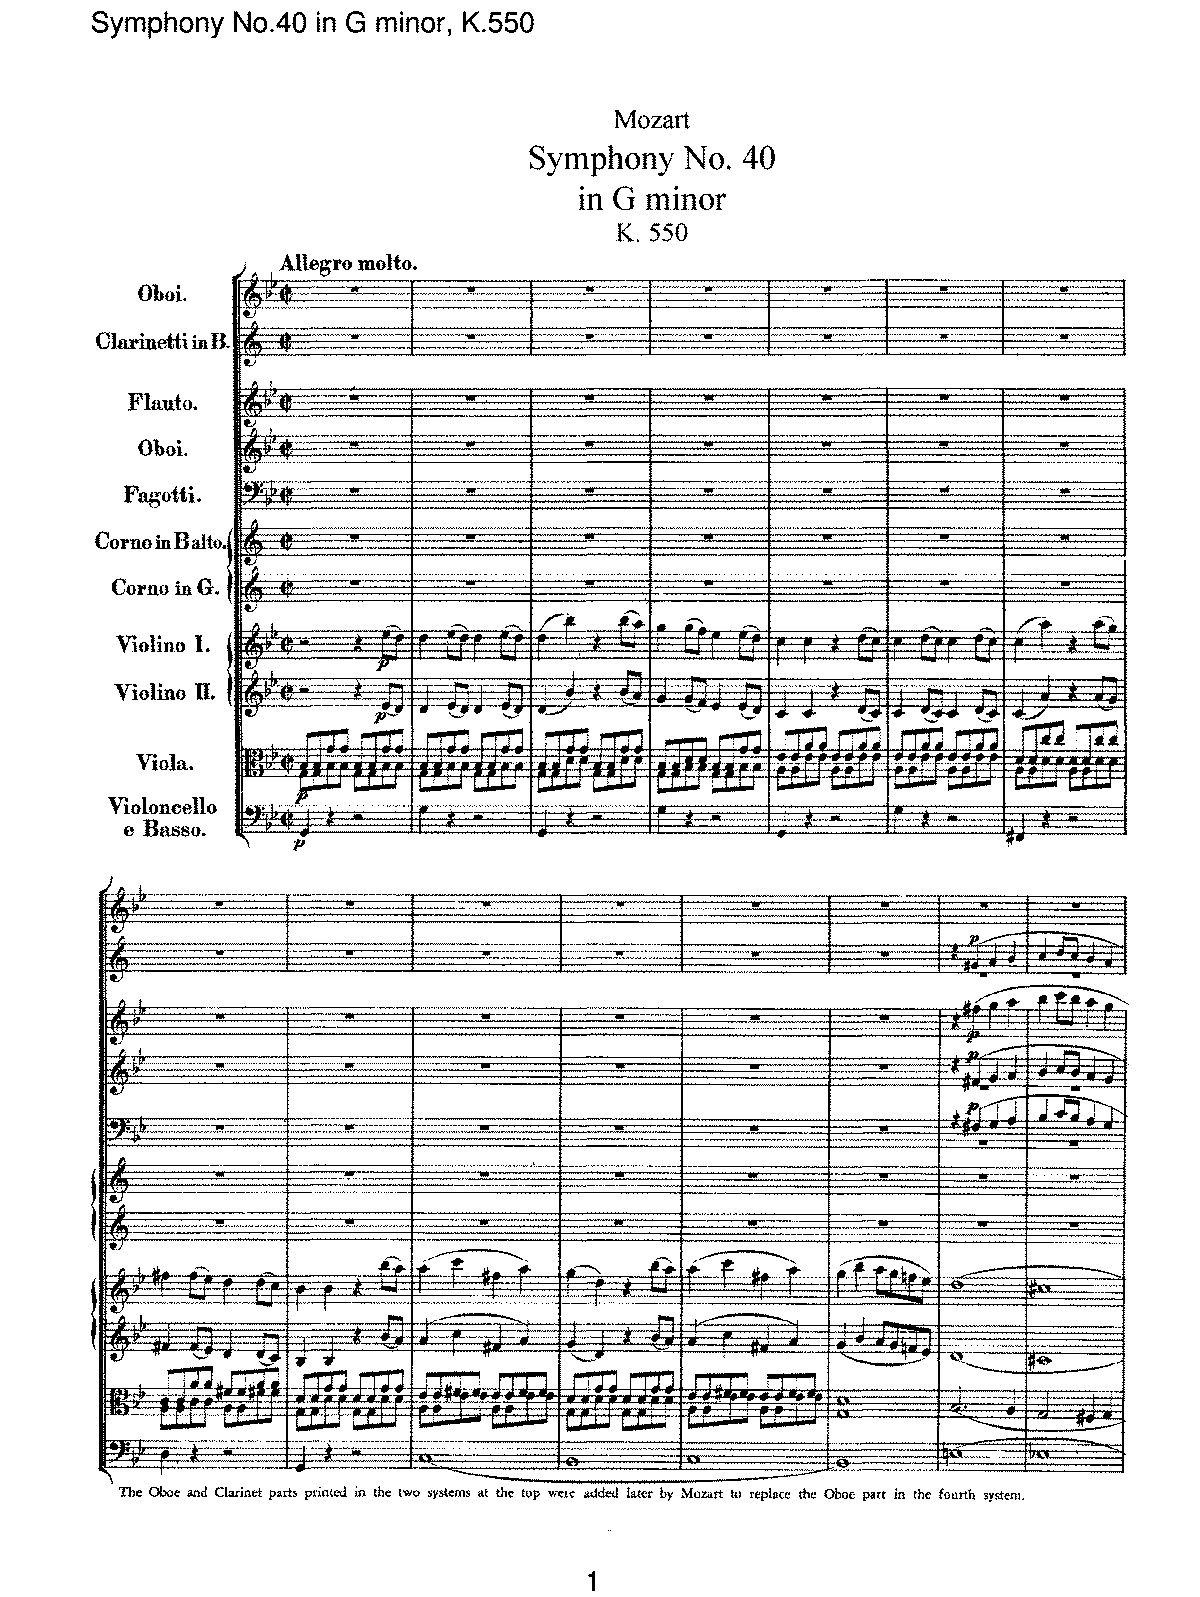 Mozart - Symphony No 40 in G minor, K550.pdf